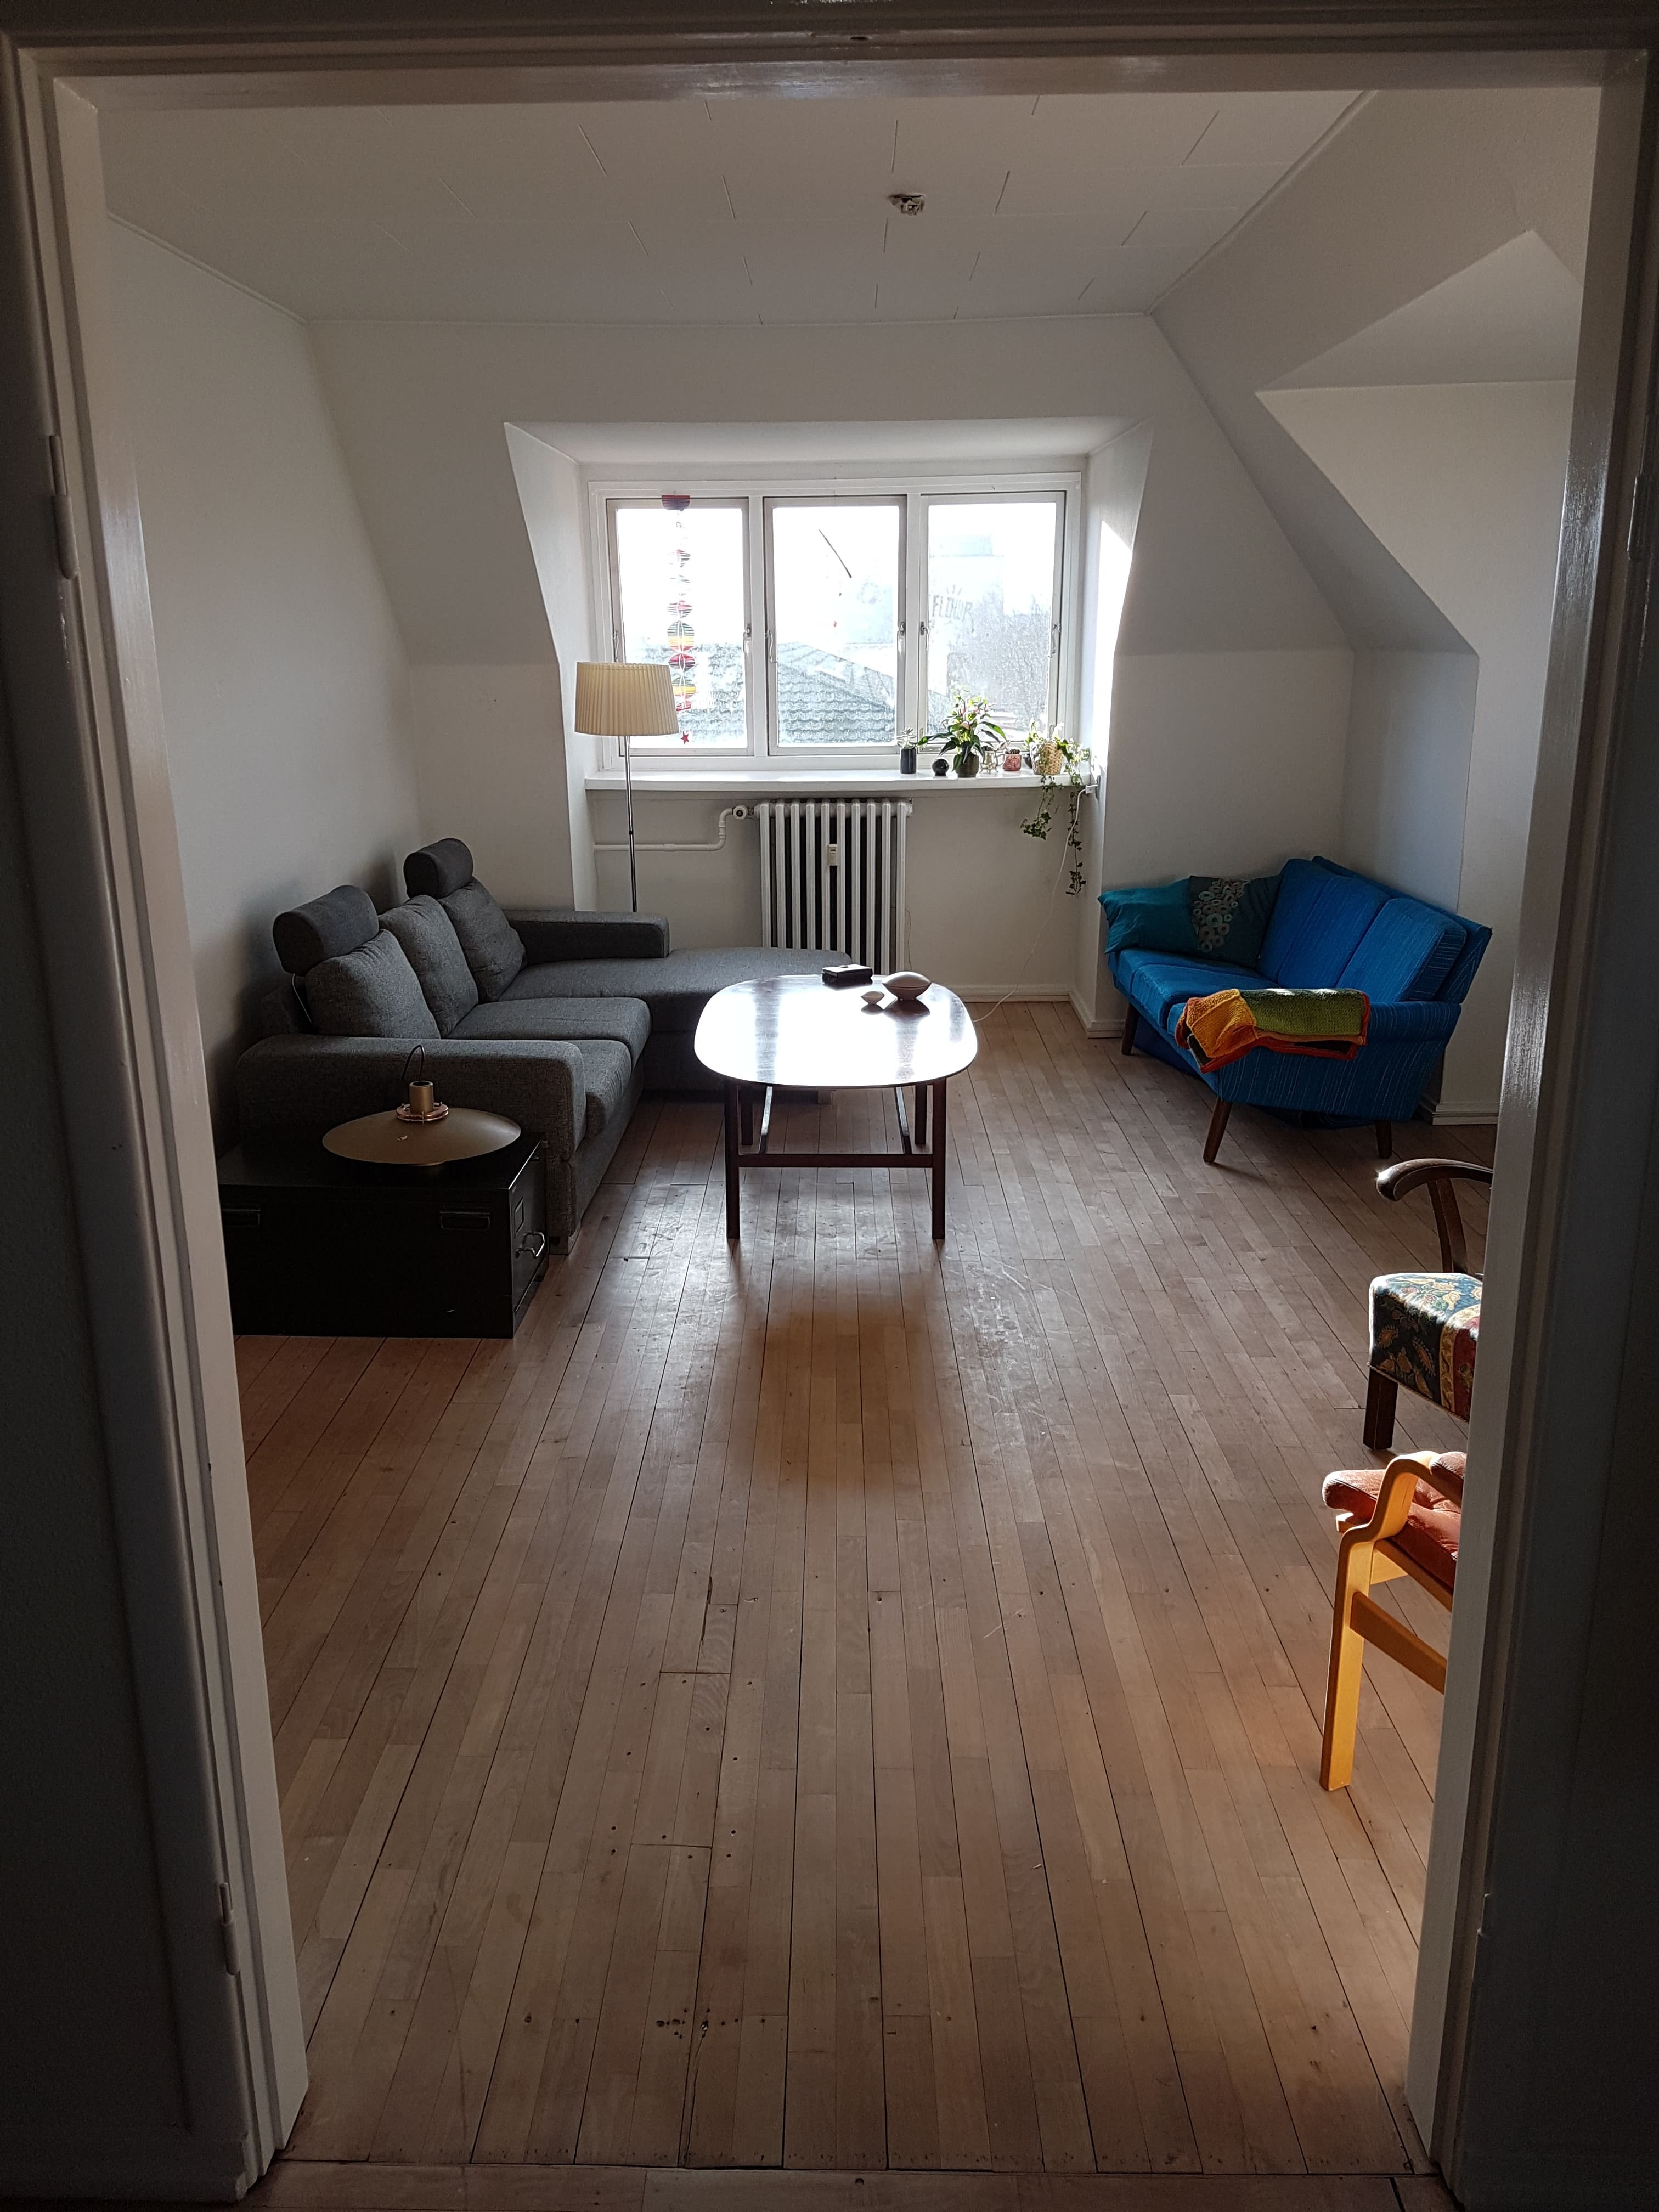 All-inclusive room in nice central 5-room apartment